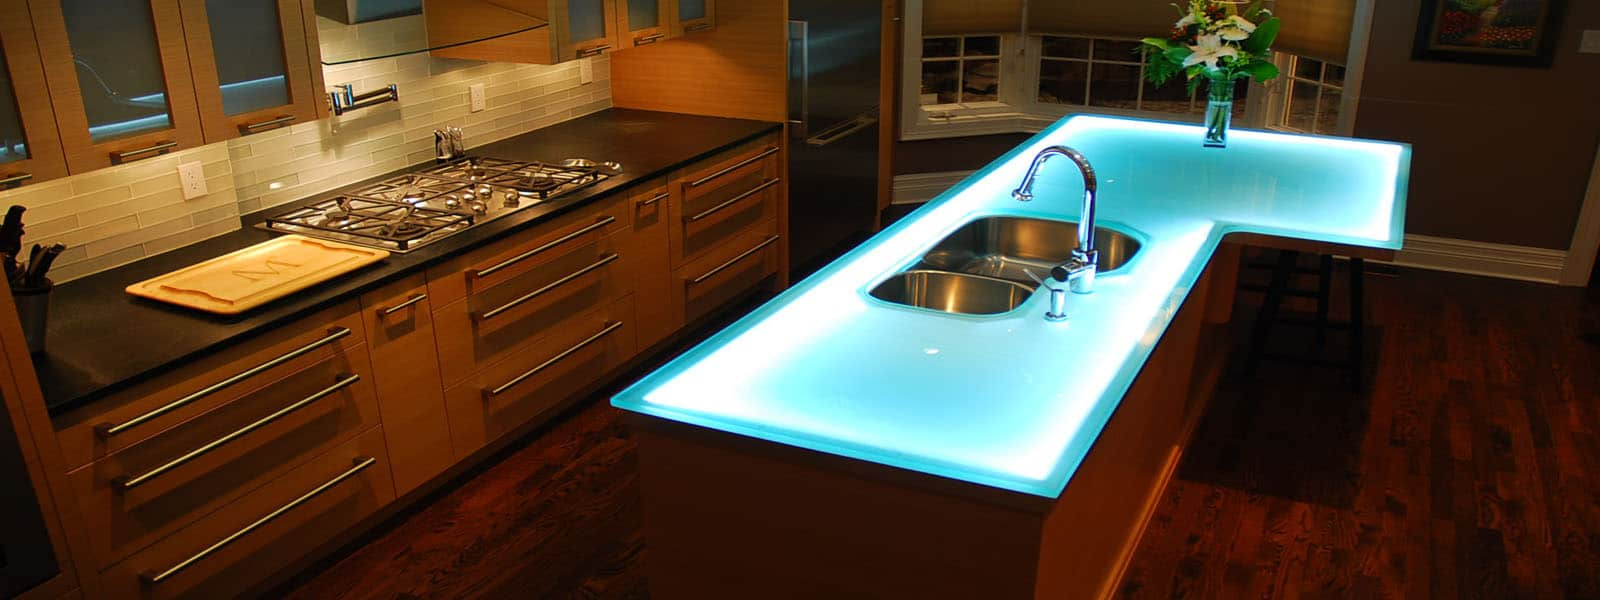 modern kitchen countertops from unusual materials unique kitchen countertops View in gallery modern countertops unusual material kitchen glass Modern Kitchen Countertops from Unusual Materials 30 Ideas